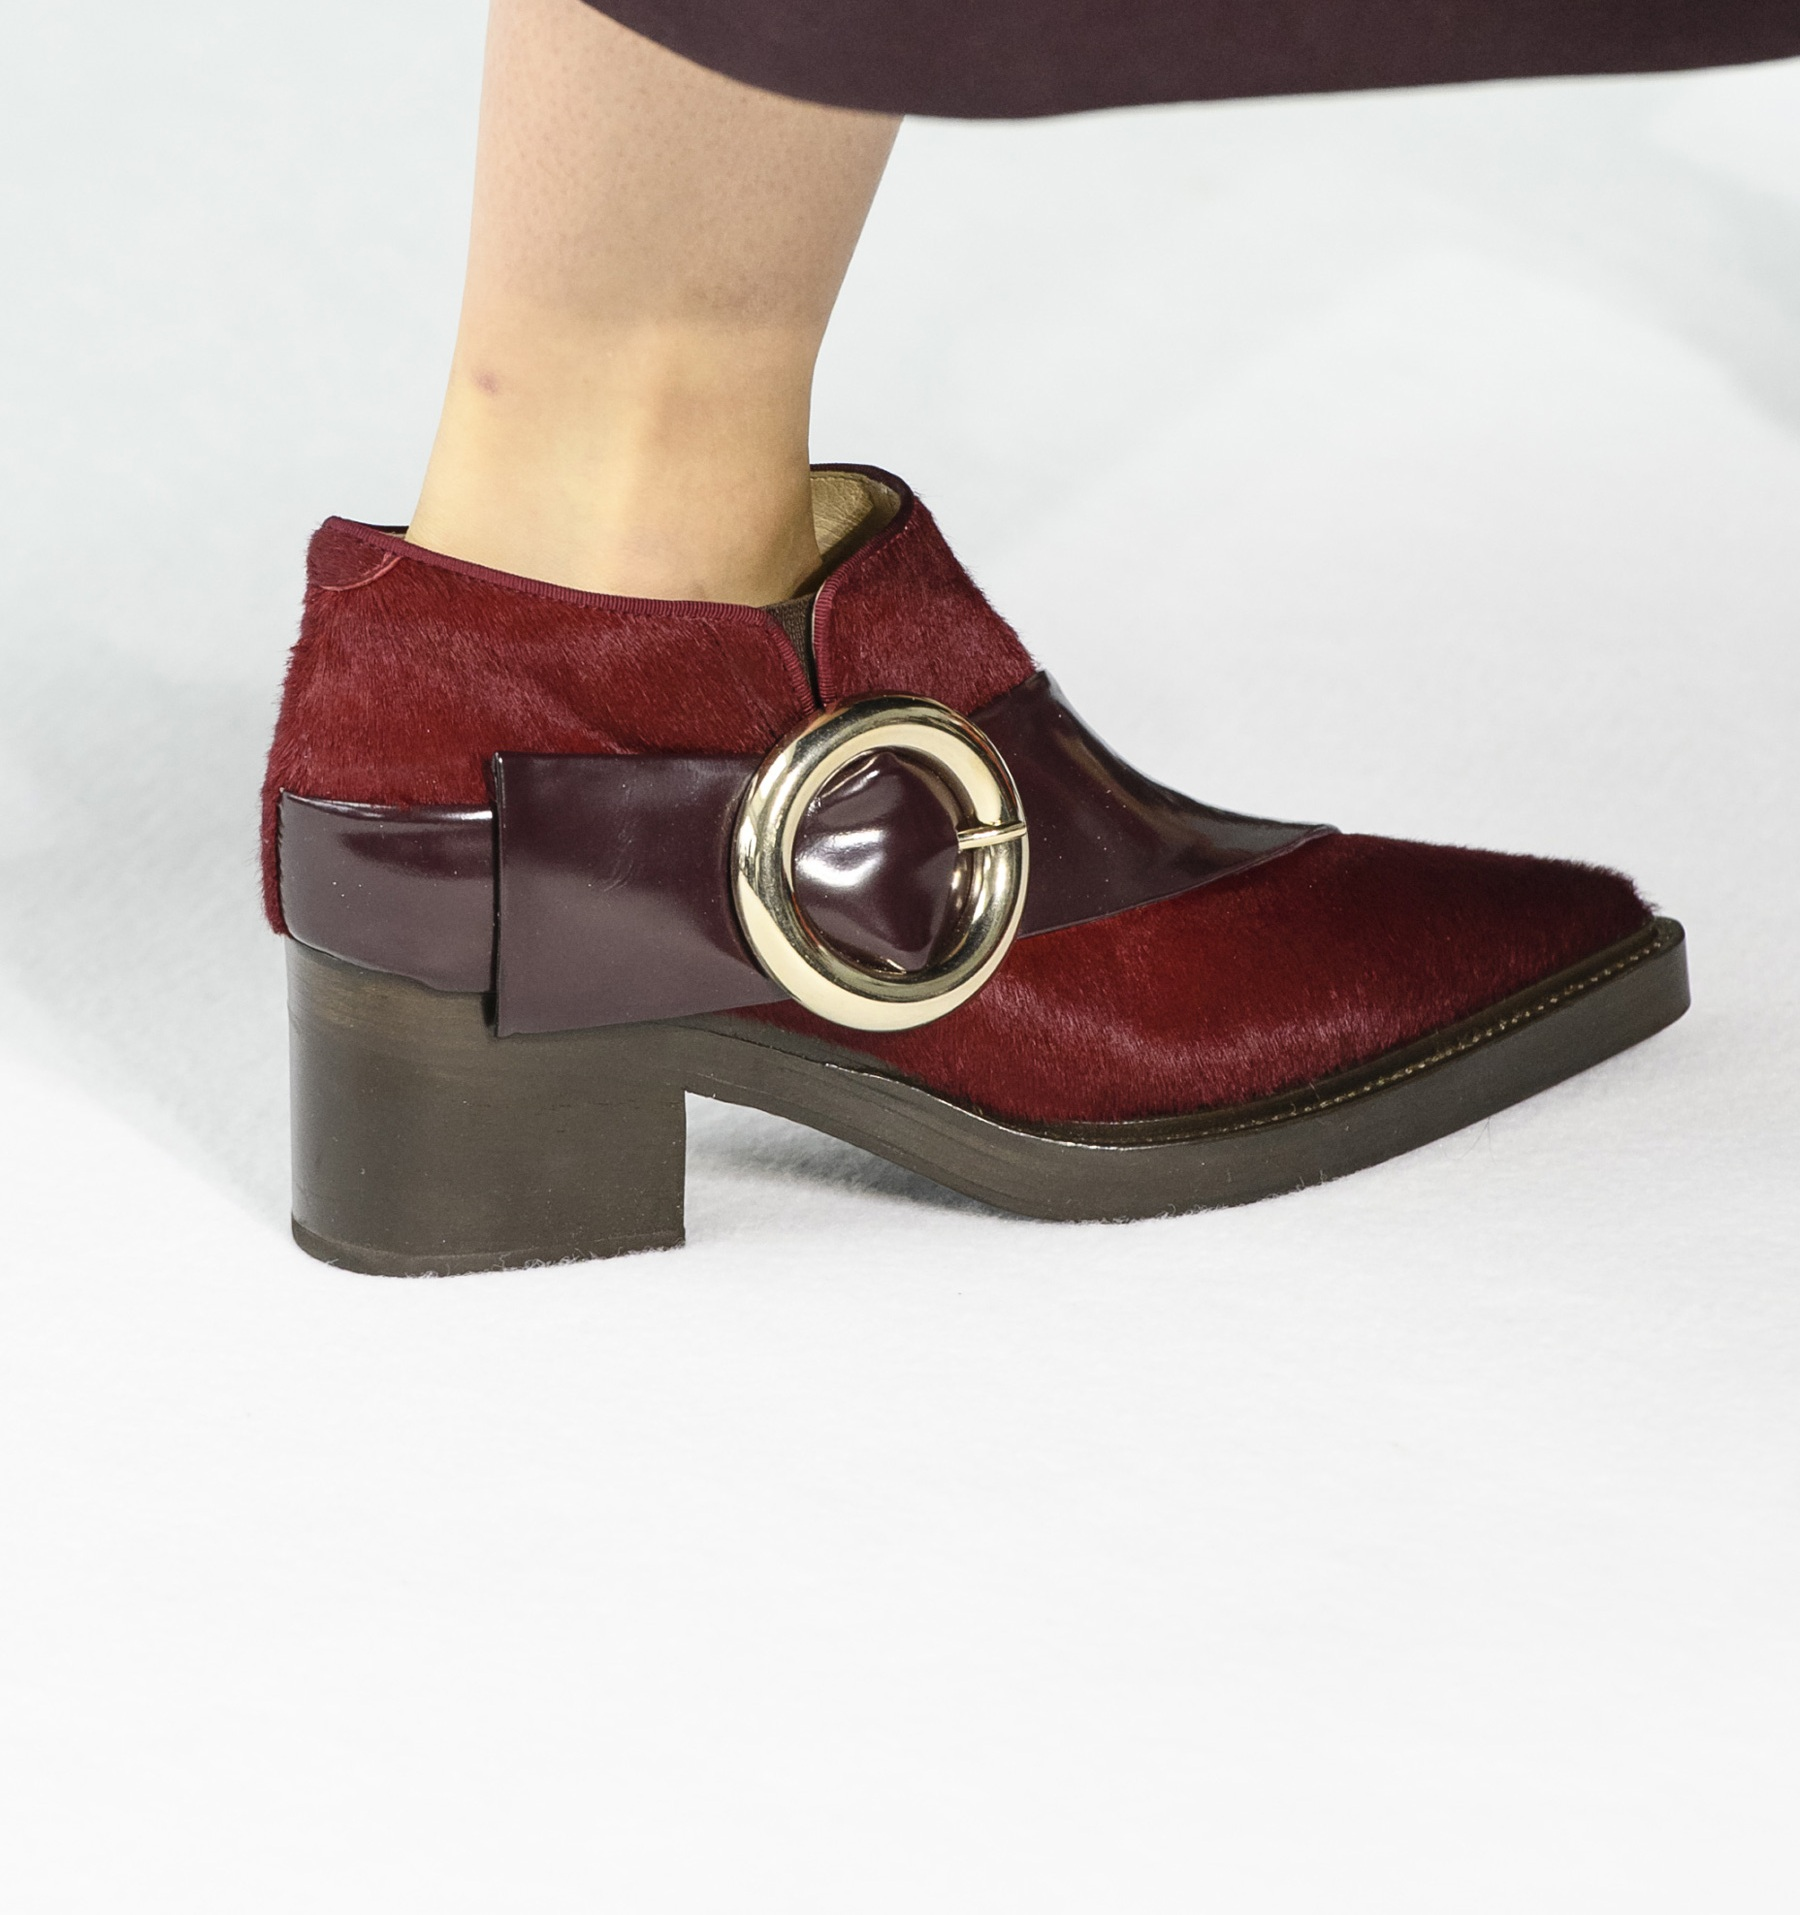 Flur-Magazine-best-shoes-fw17-delpozo-clp-rf17-7498